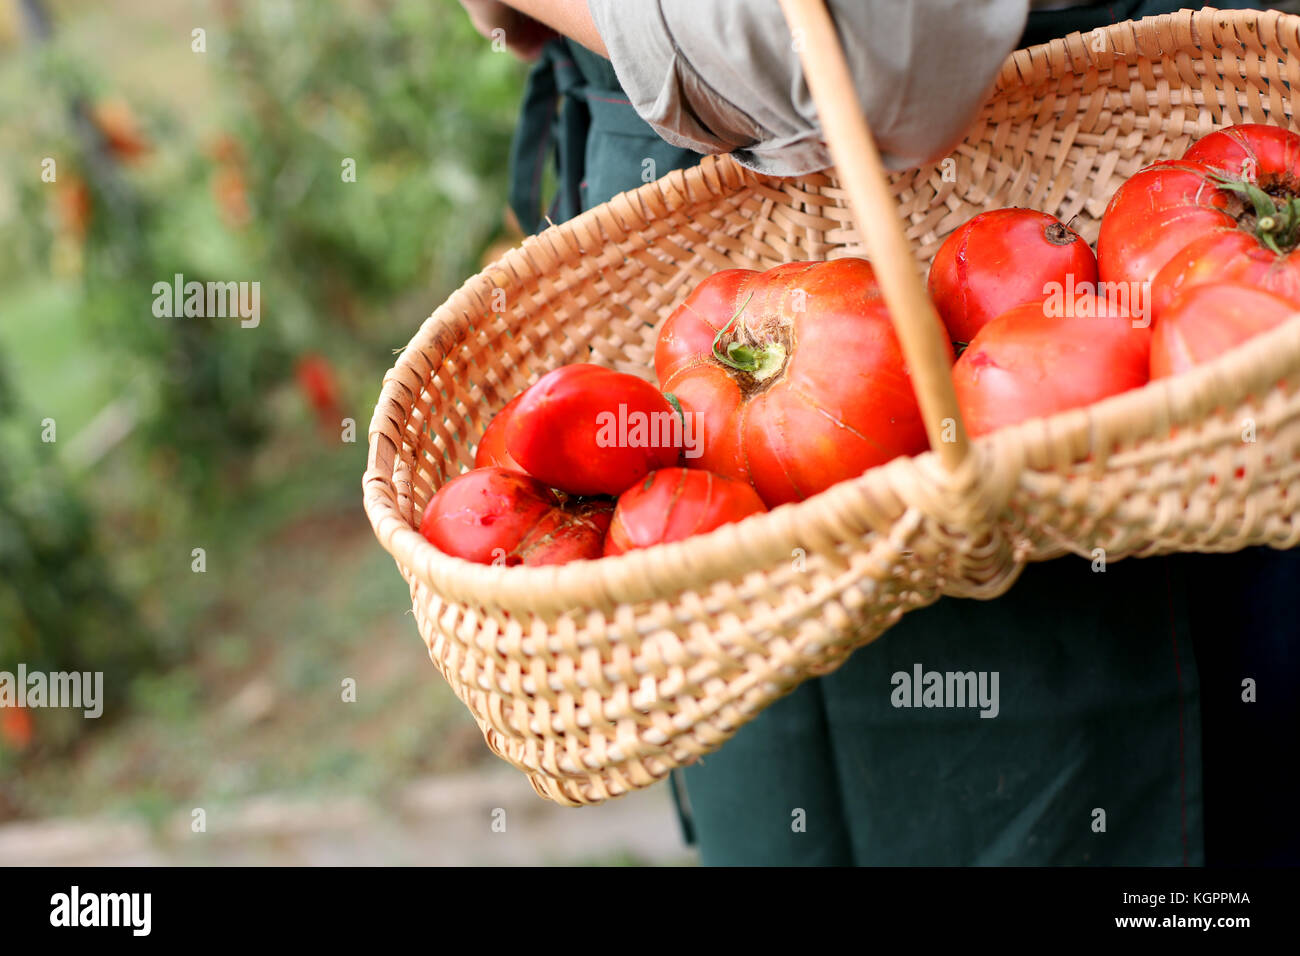 Closeup of fresh tomatoes in basket - Stock Image